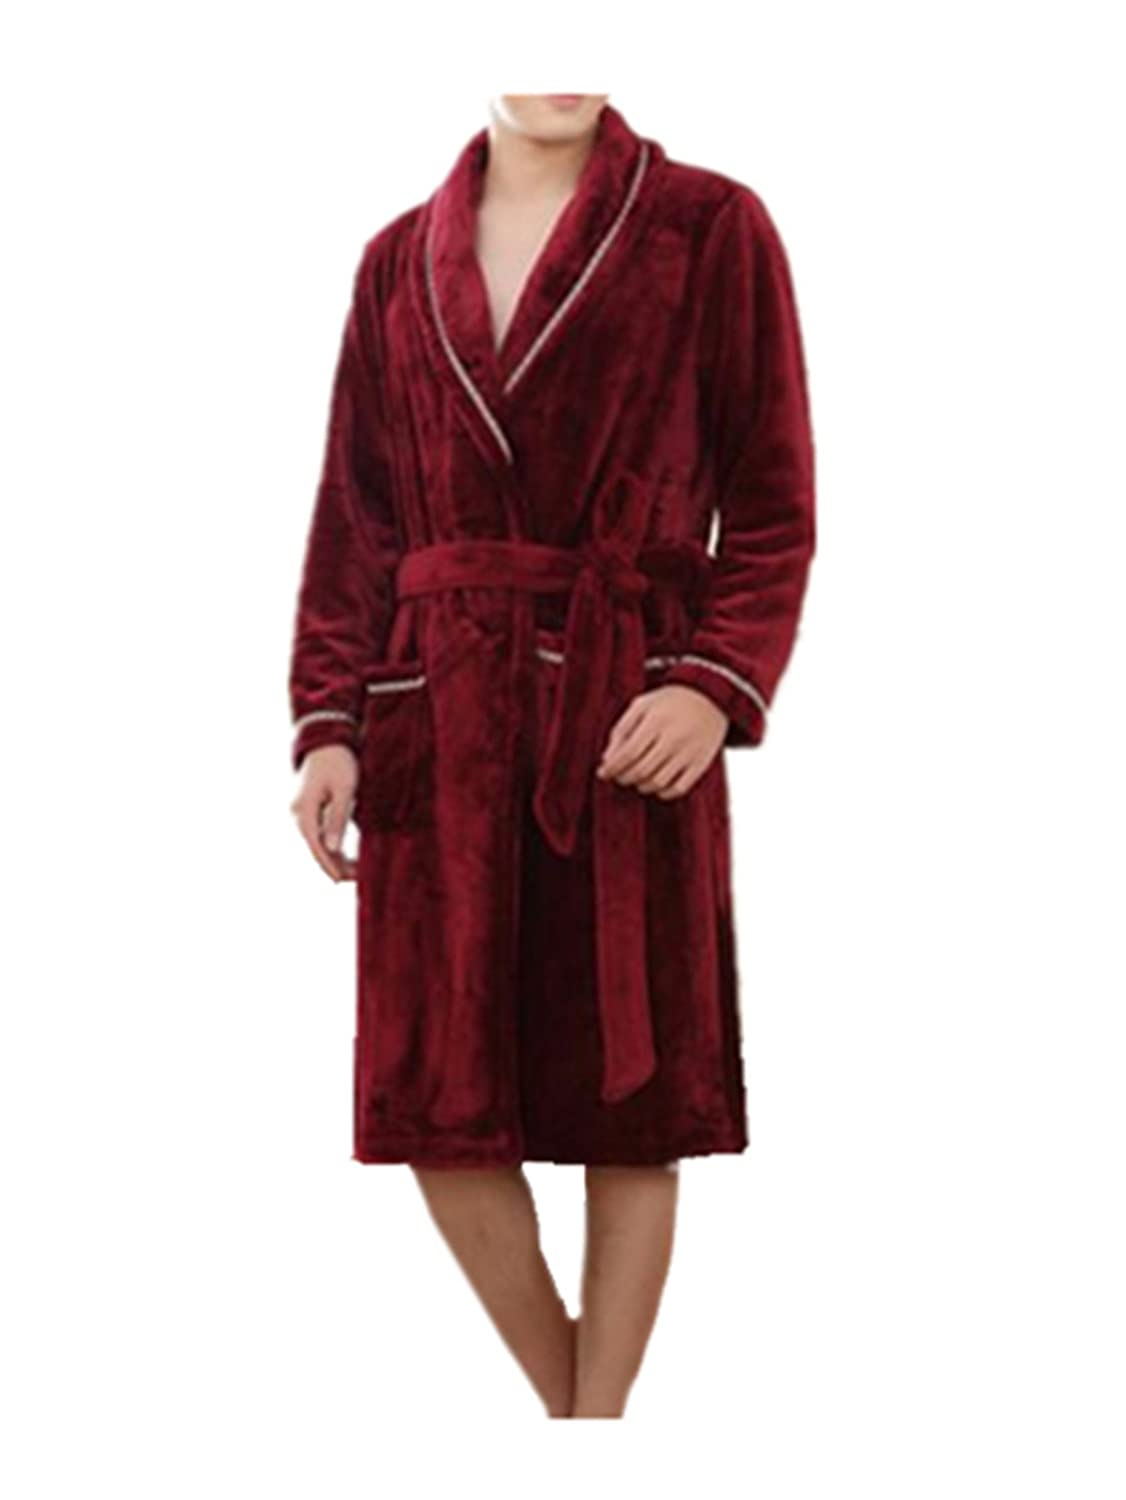 Leright Mens Flannel Kimono Robe Plush Luxury Sleepwear Long Spa Bathrobes at Amazon Mens Clothing store: